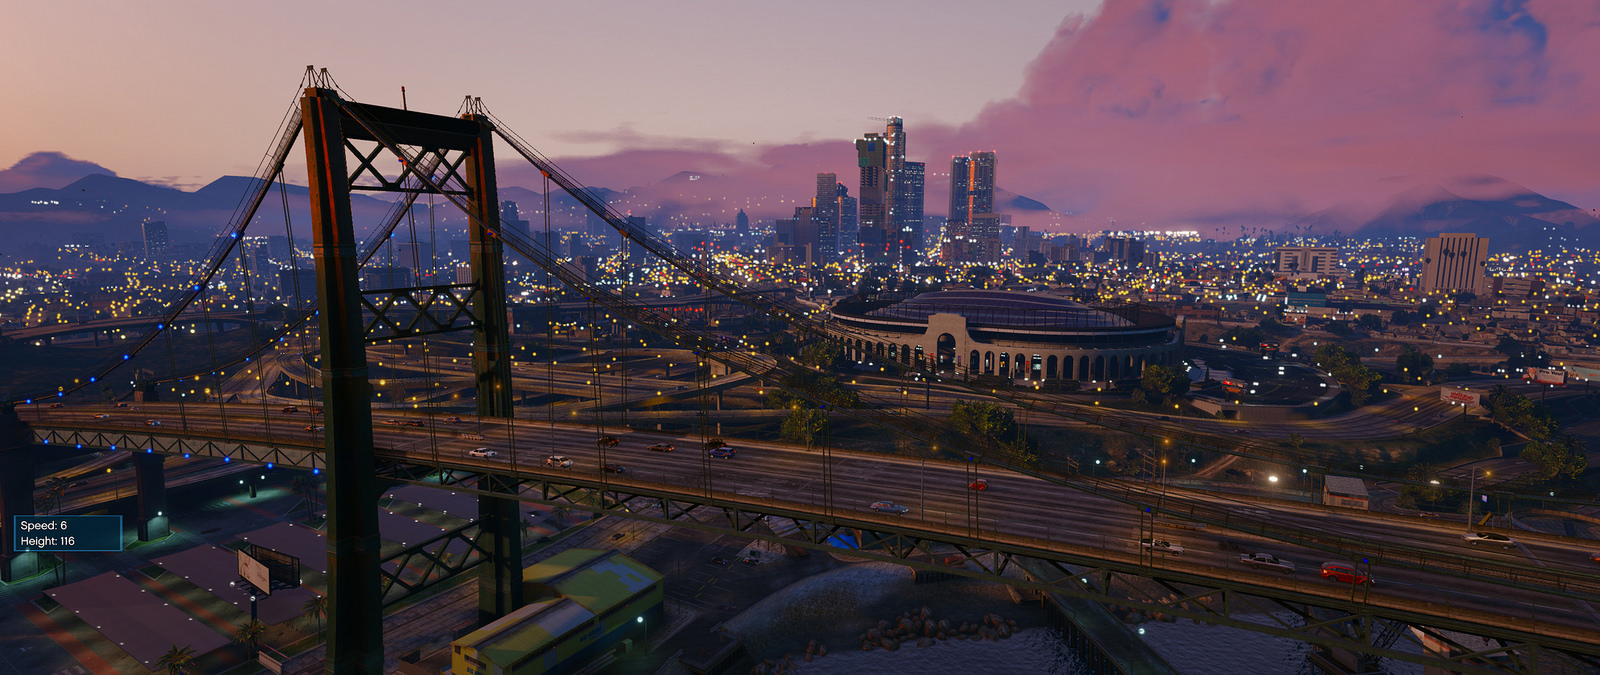 GTA V Amazing Gionight Modded Screenshots Are Way Better Than The Original Game